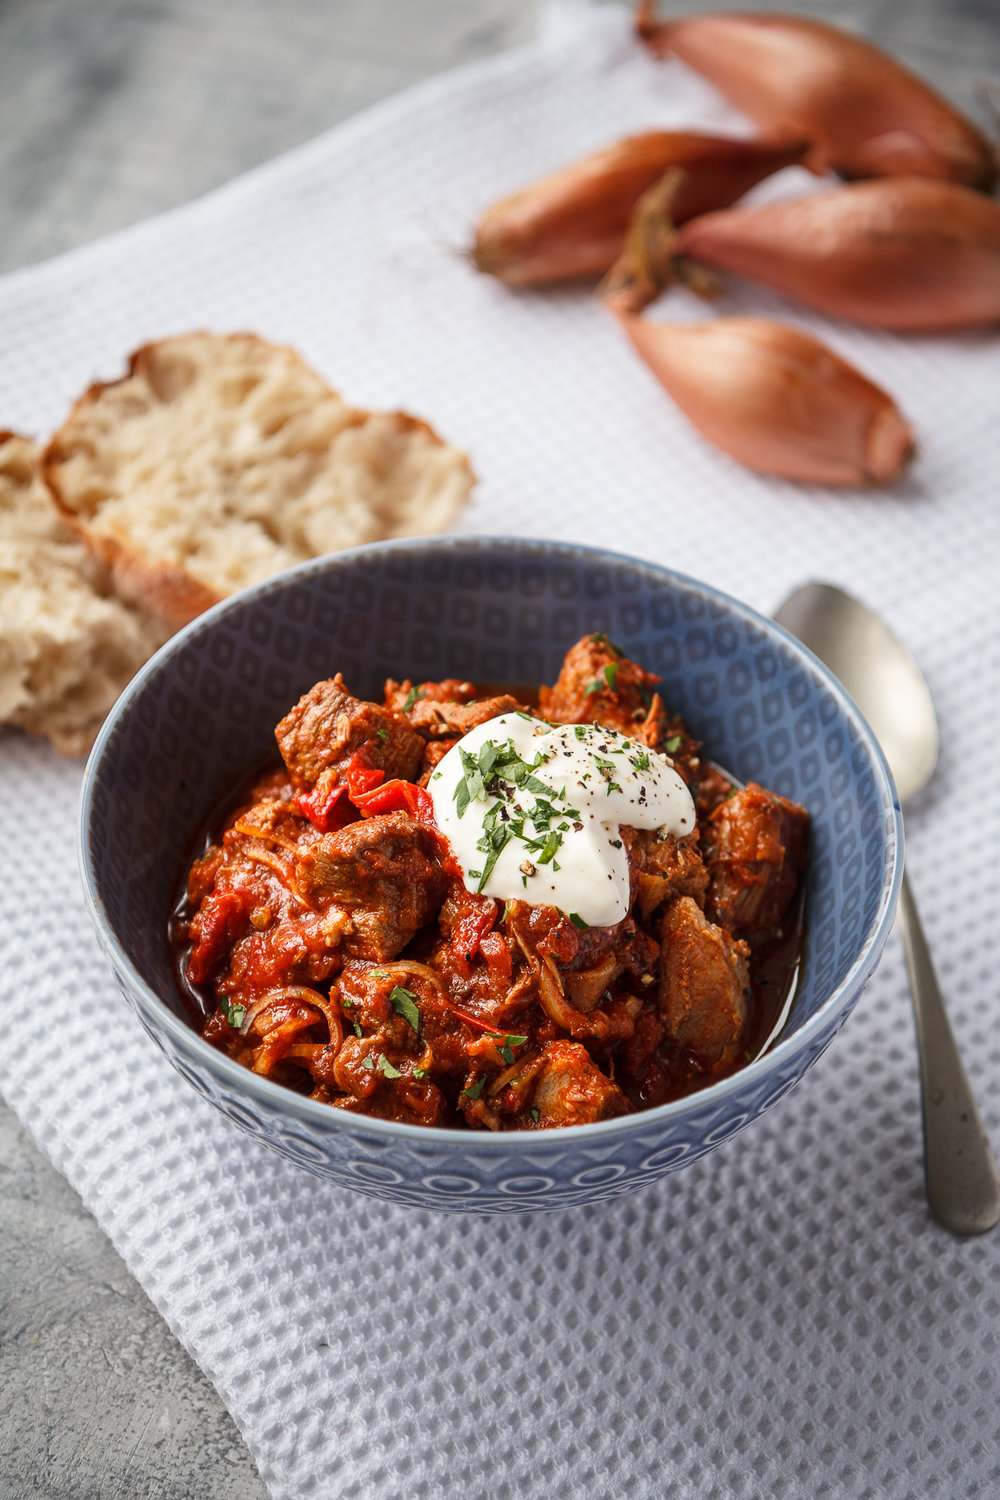 Slow cooker pork, shallot, red pepper goulash - A comforting and hearty Hungarian-inspired slow cooked stew to chase those winter chills away.